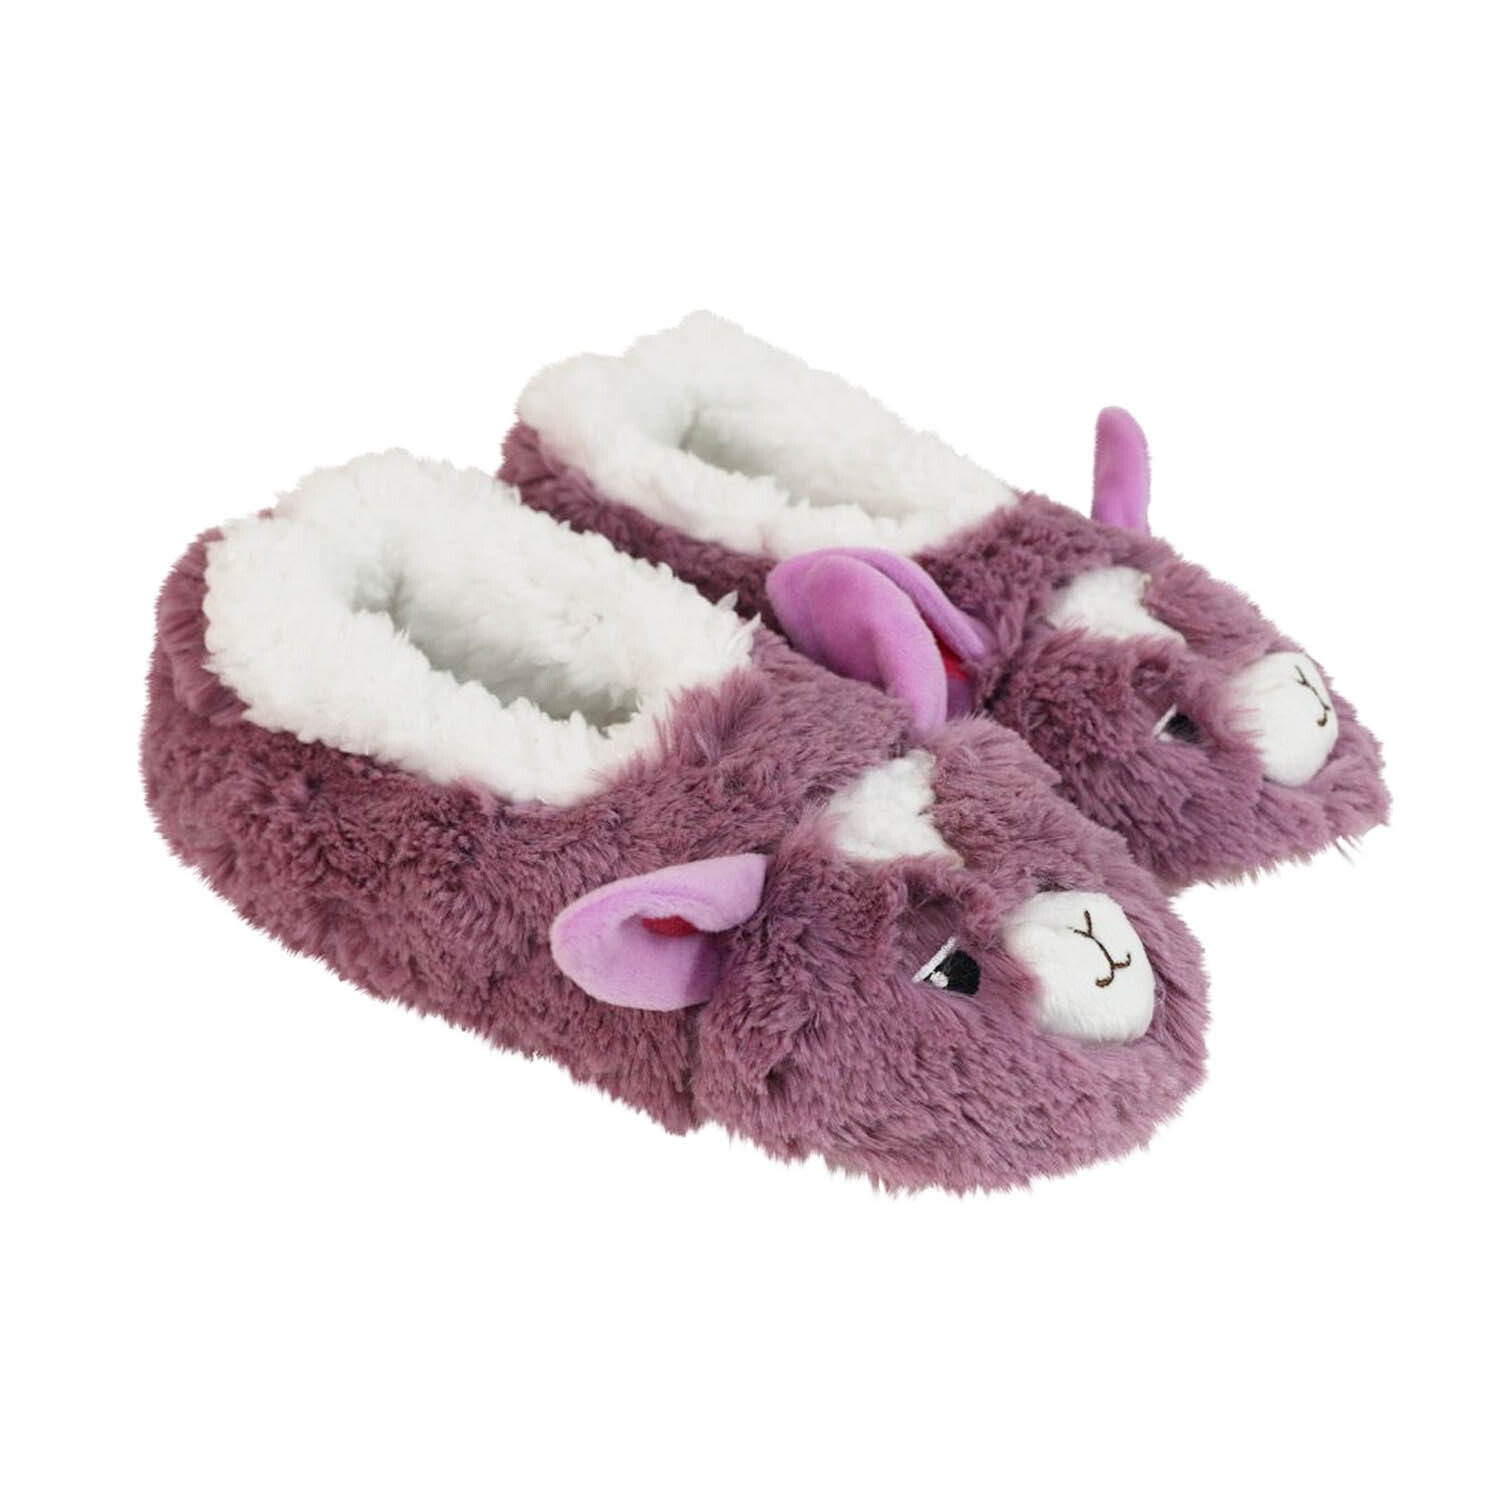 SLUMBIES-FURRY-FOOT-PALS-CRITTERS-Women-039-s-Soft-Slippers-Socks-Non-Slip-NEW thumbnail 6